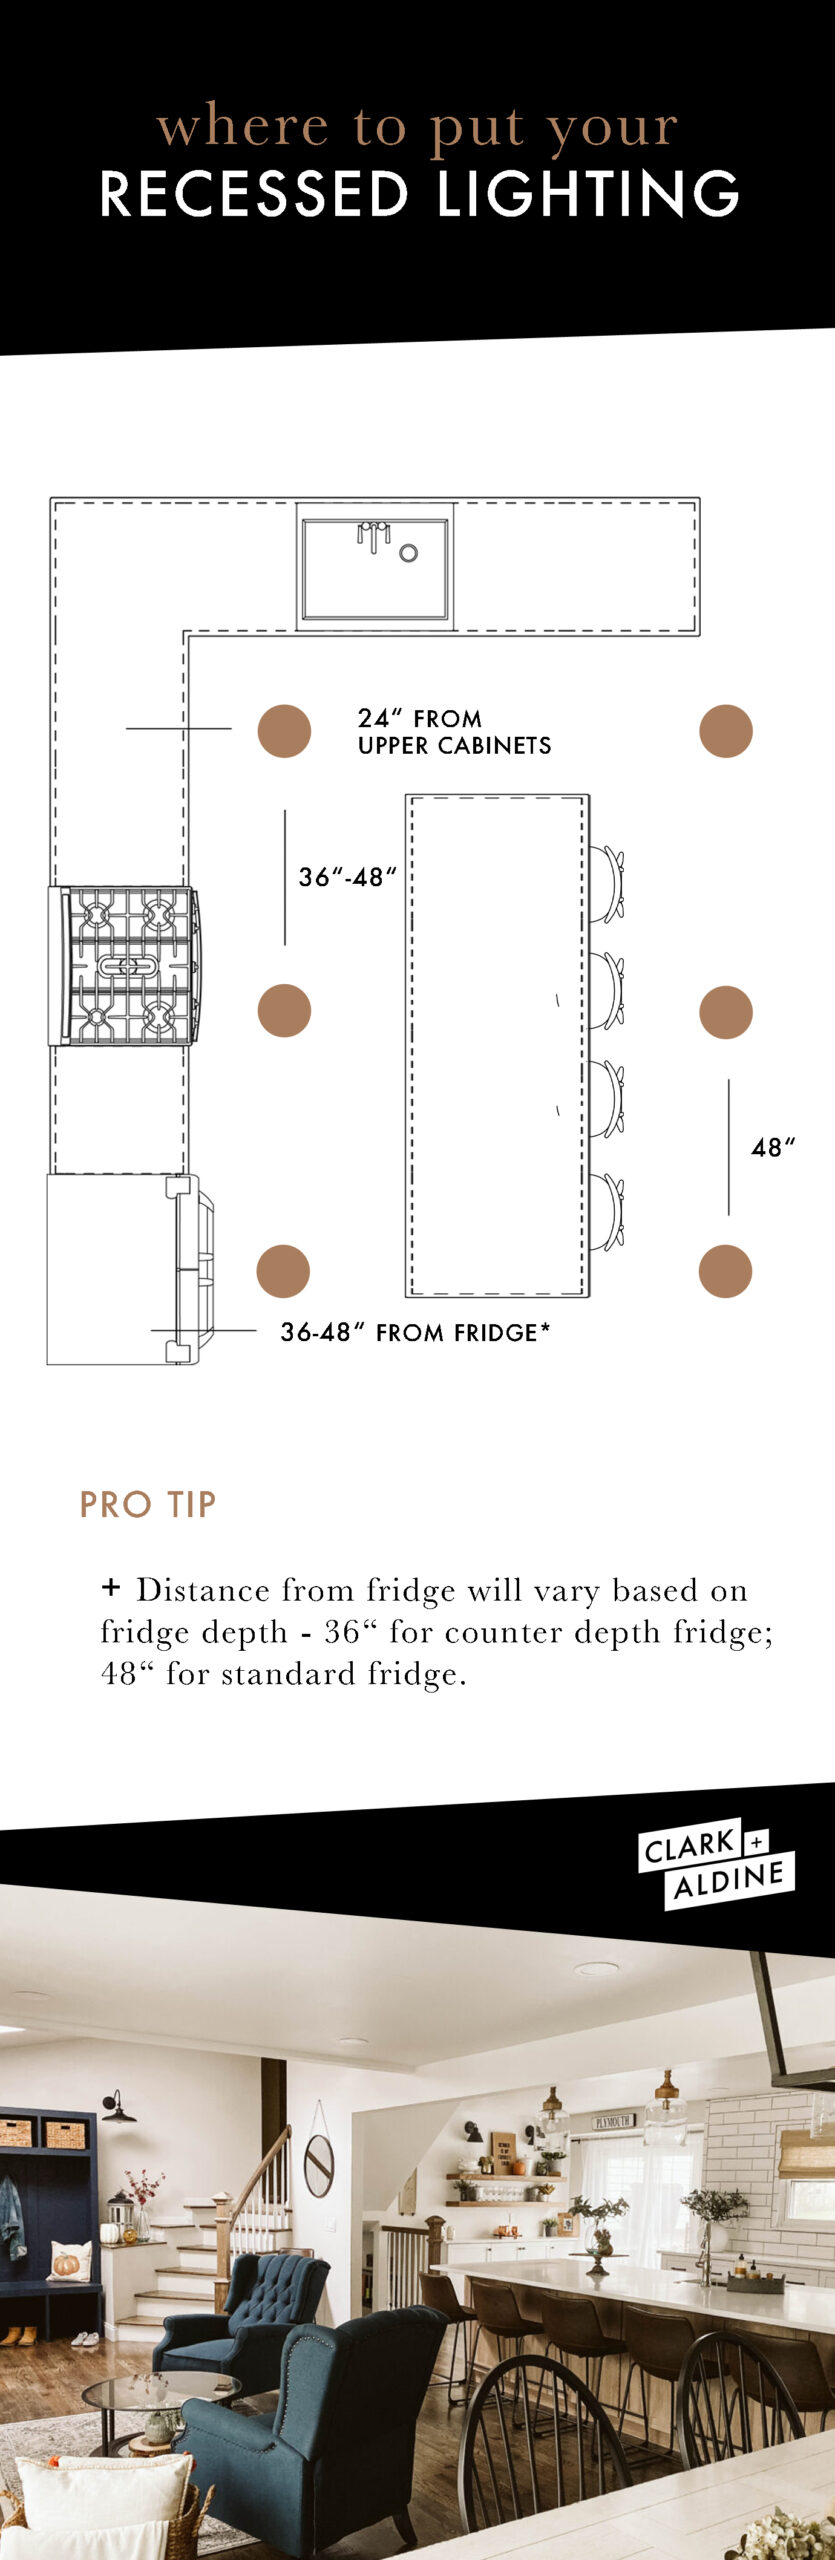 how to place your recessed lighting